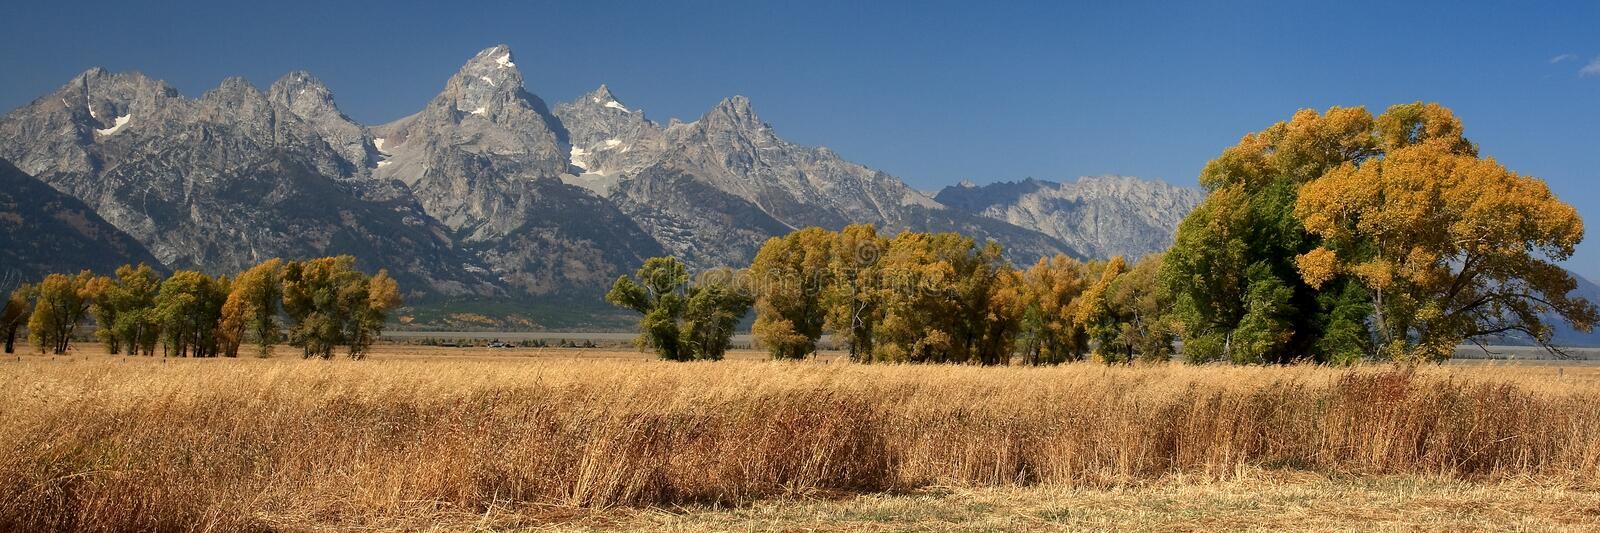 Tetons and Trees royalty free stock images